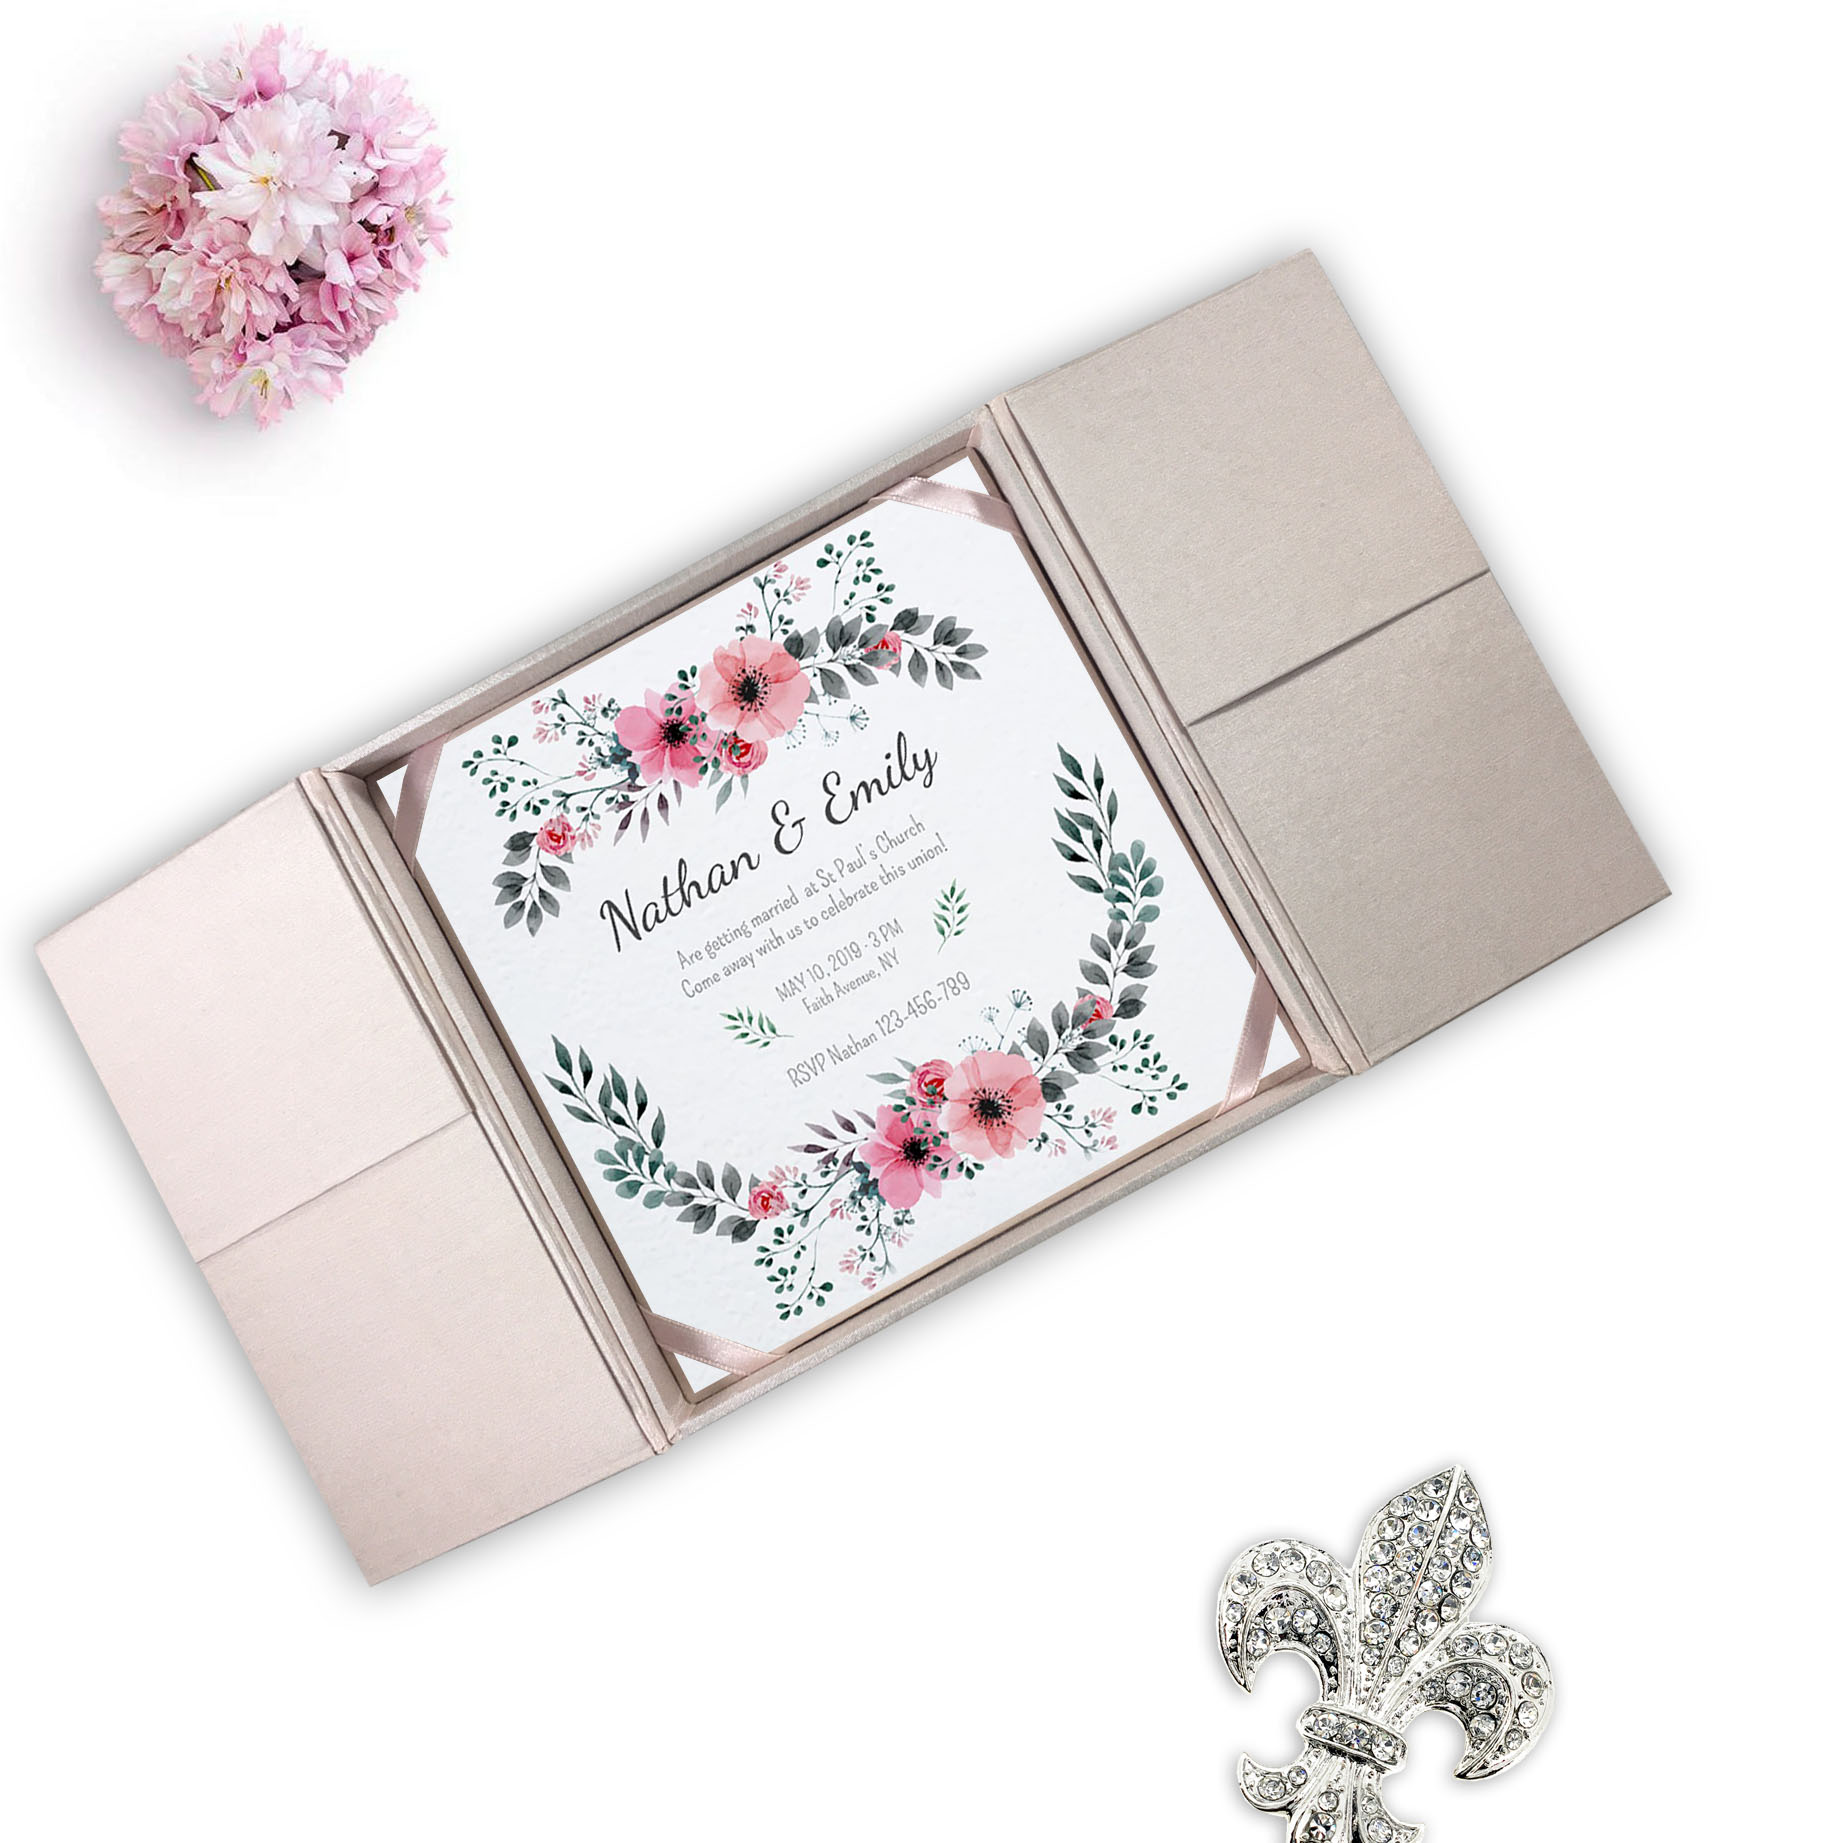 blush pink gatefold silk invitation box